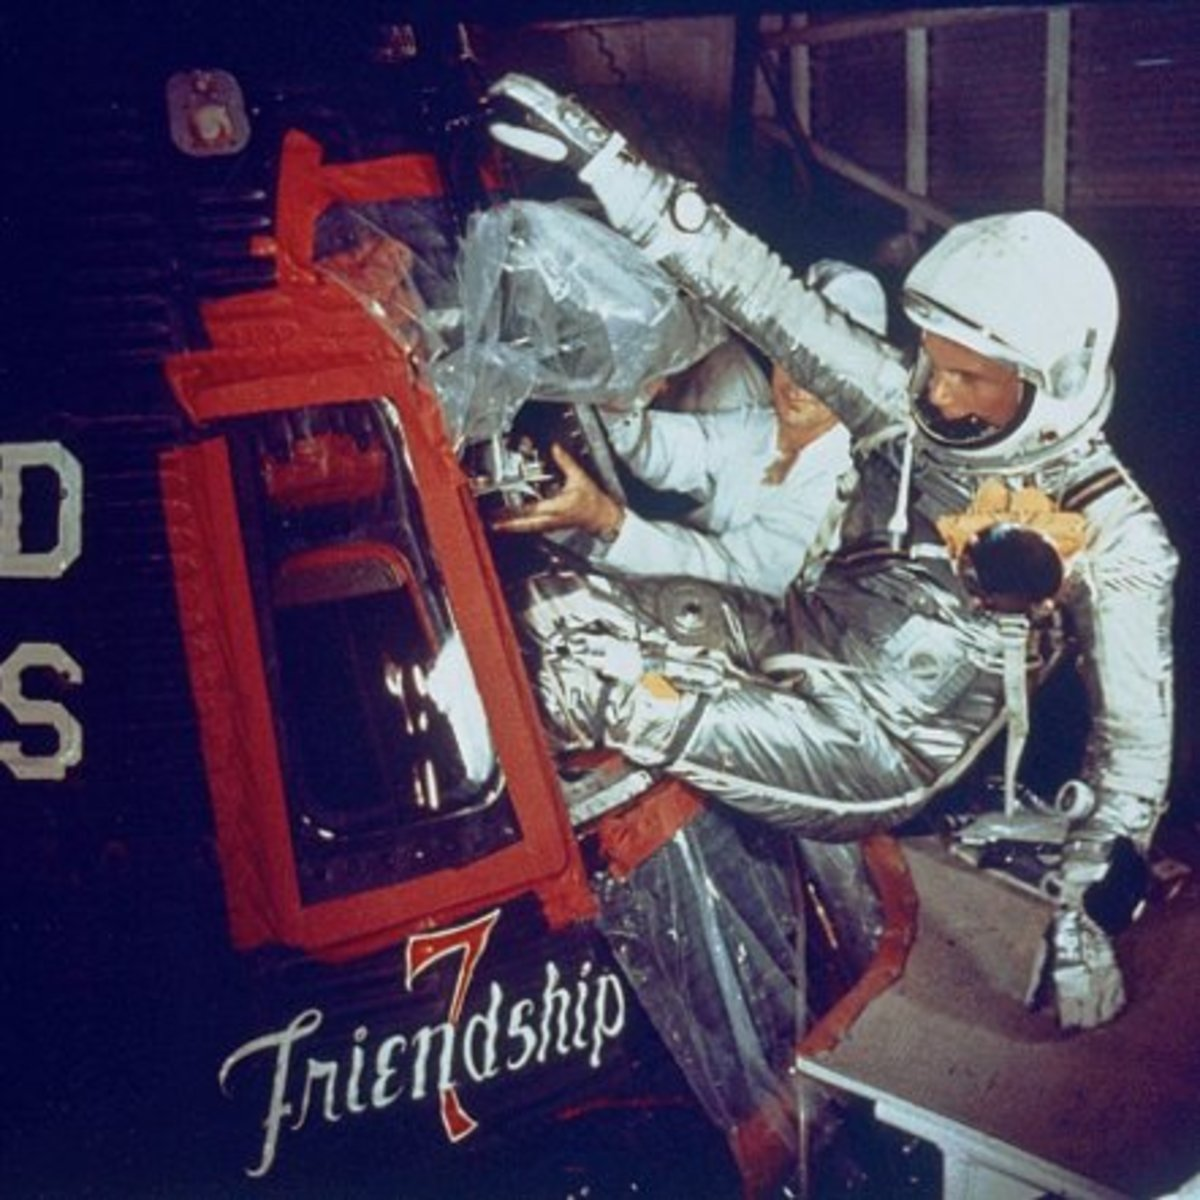 Friendship 7 artwork can be seen as John Glenn enters the capsule. Photo courtesy of NASA.